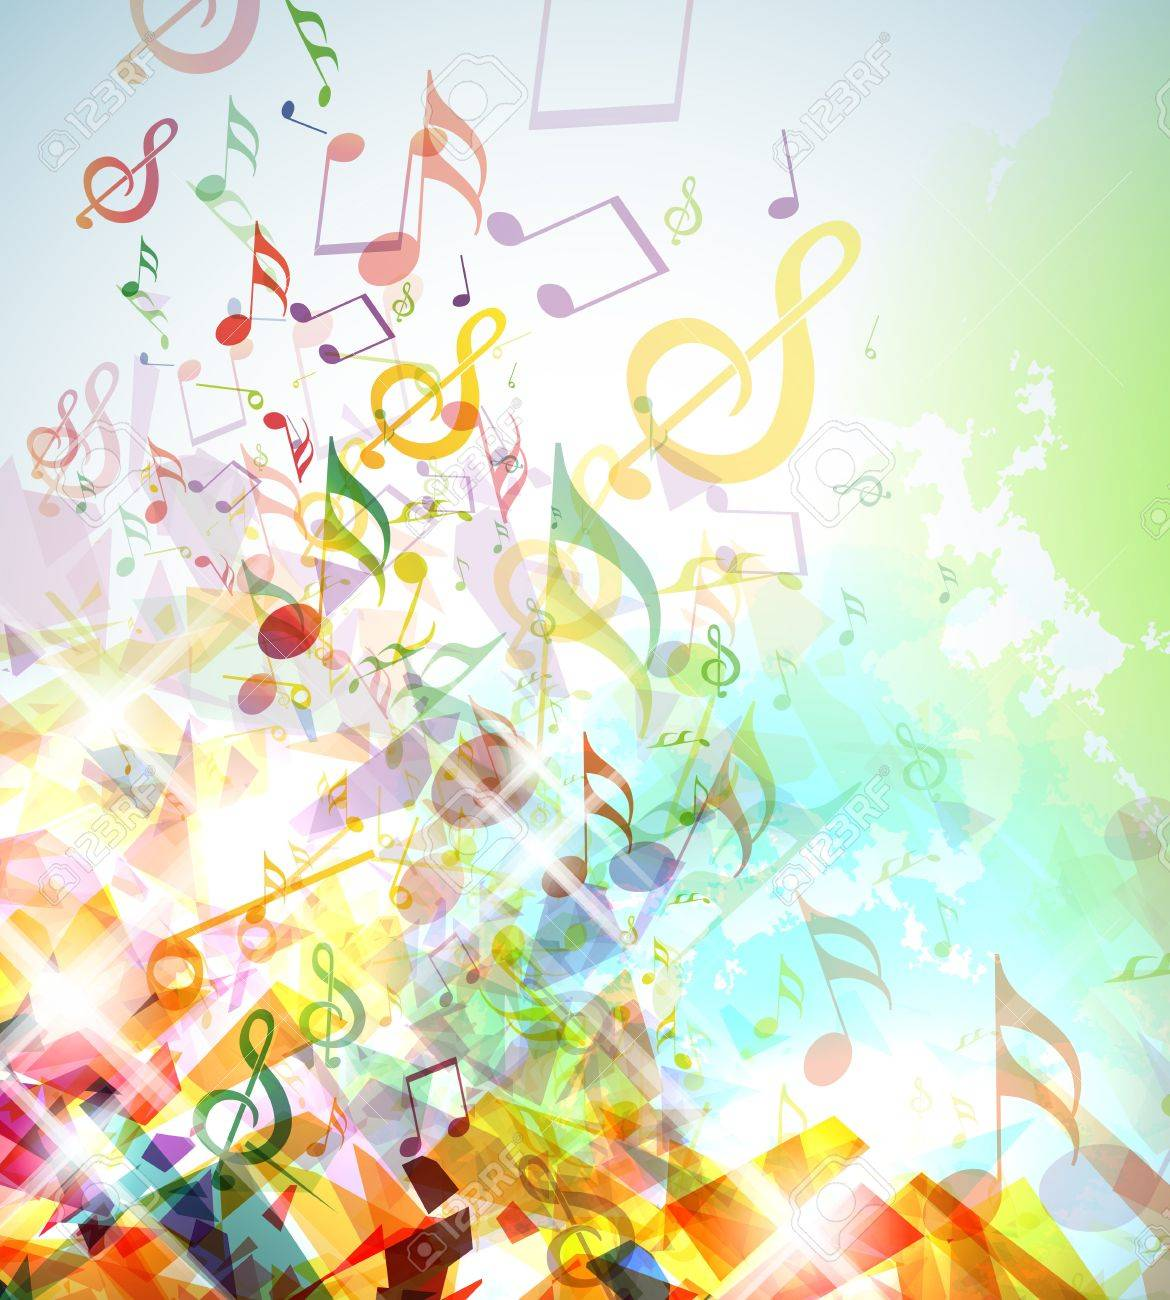 Musical notes staff background on white vector by tassel78 image - Music Notes Background Illustration With Colorful Shattered Elements And Musical Notes Illustration